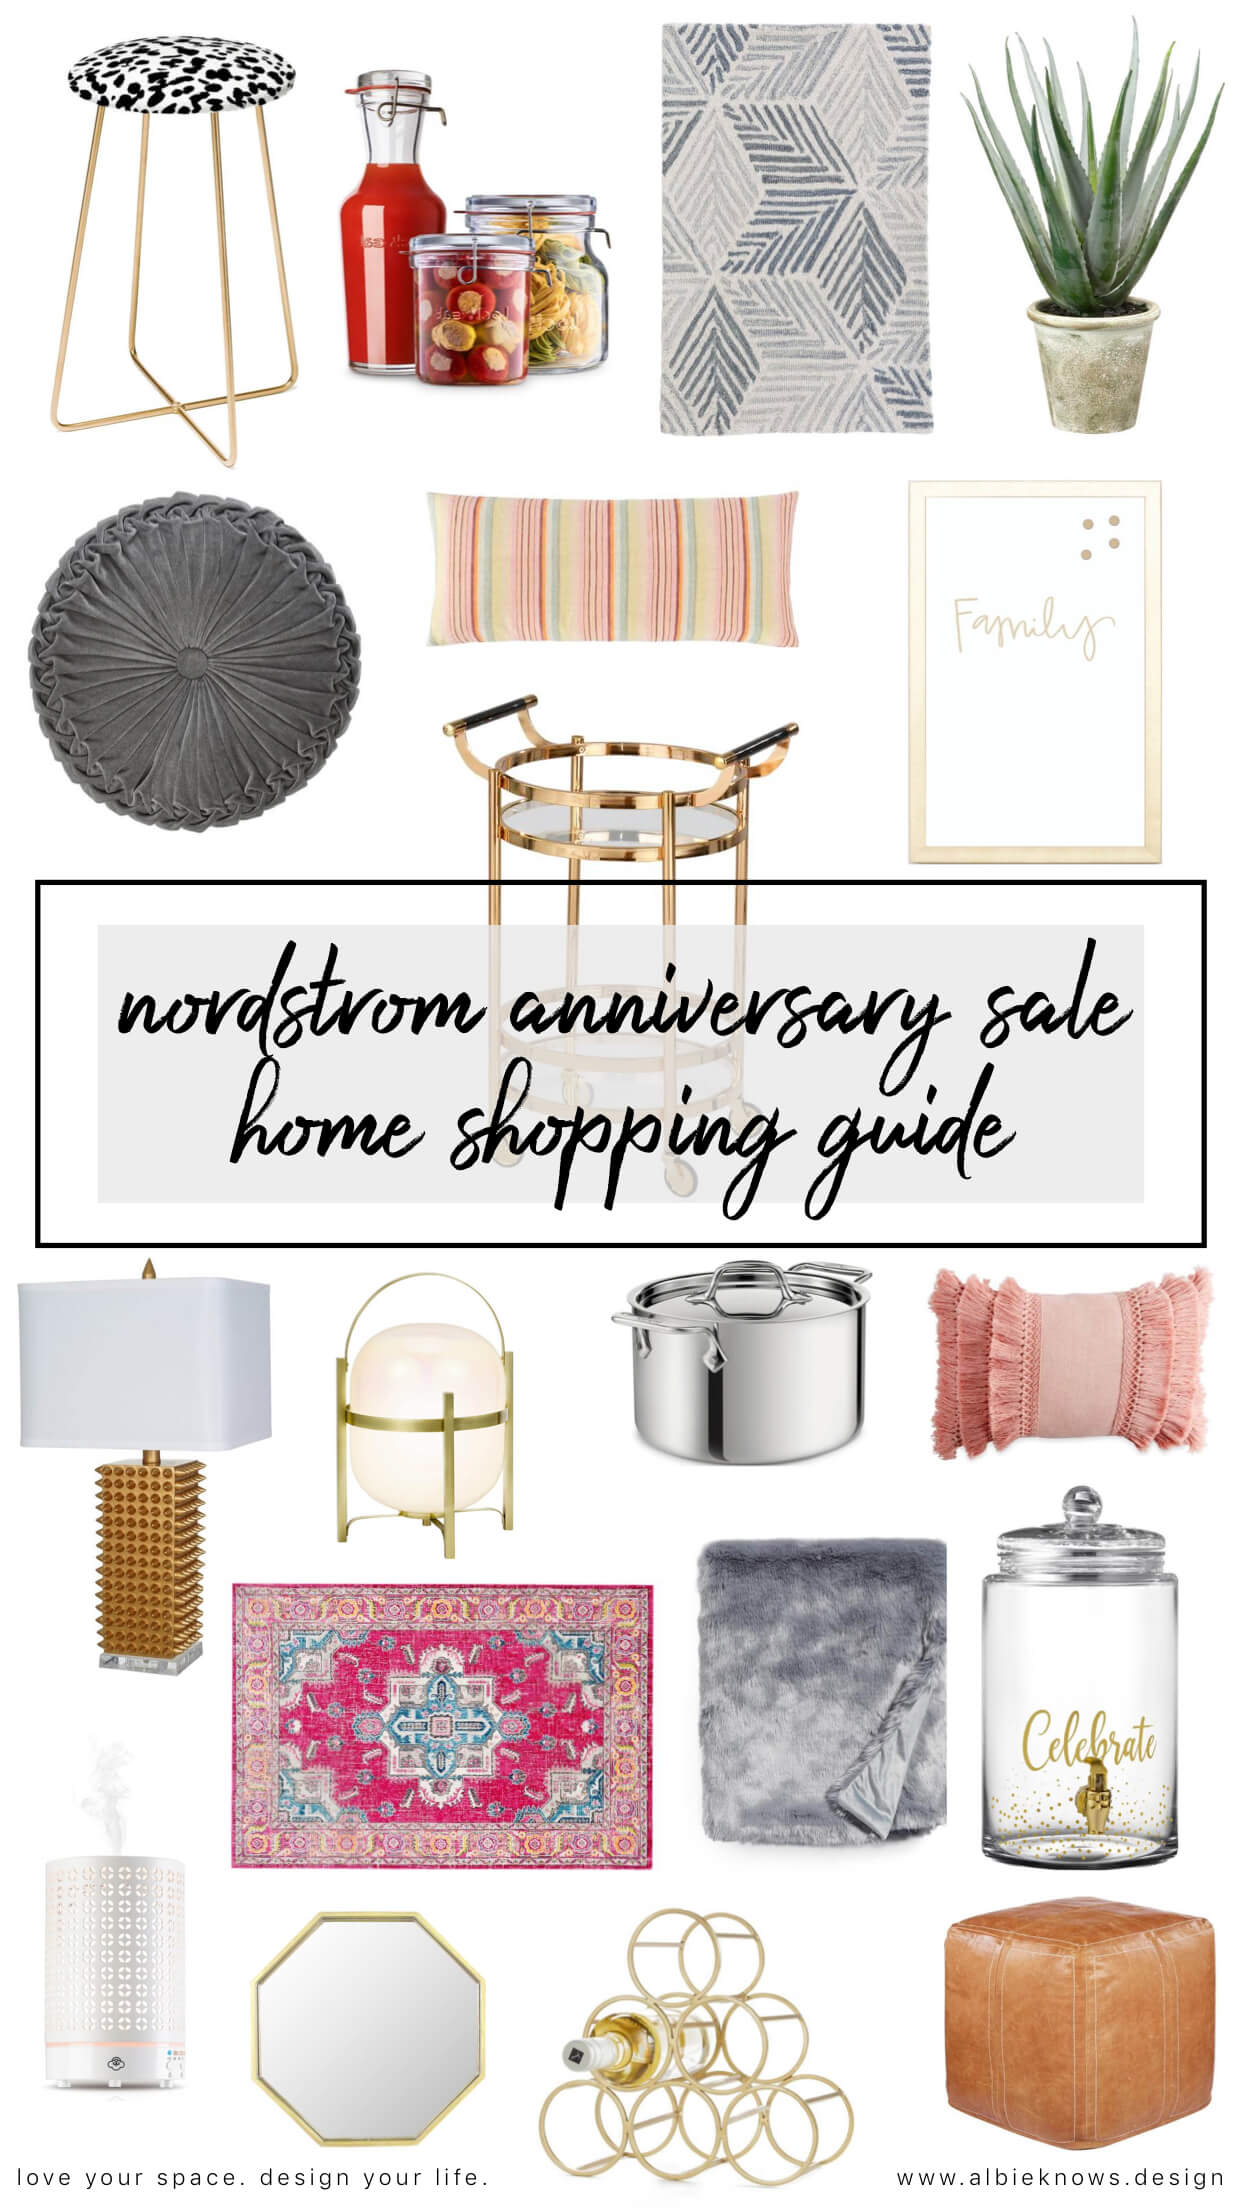 Albie Knows Nordstrom Anniversary Sale Home Finds 1.jpeg